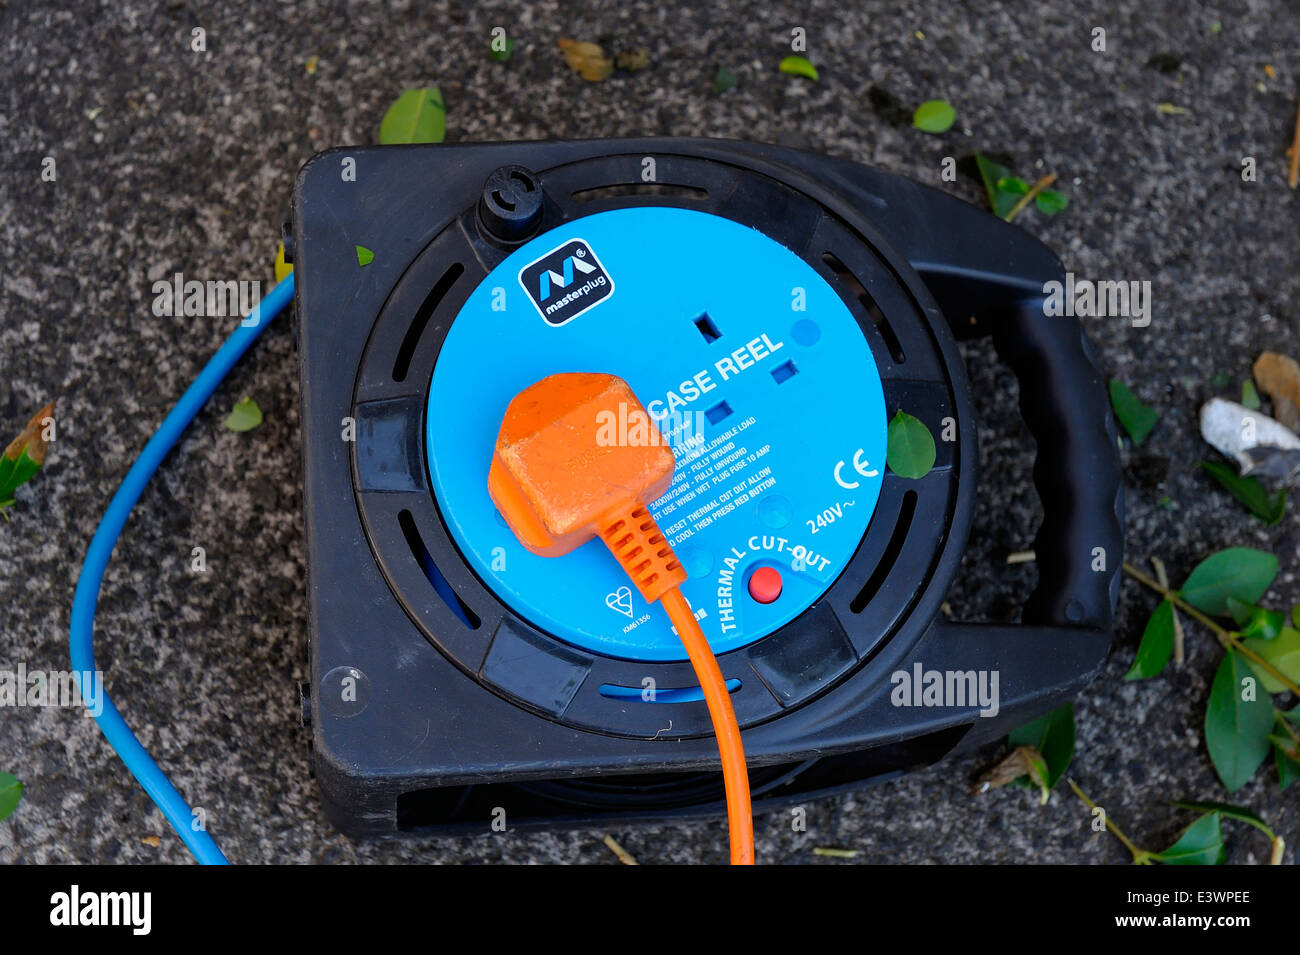 An orange plug lead plugged into a blue extension cable reel - Stock Image